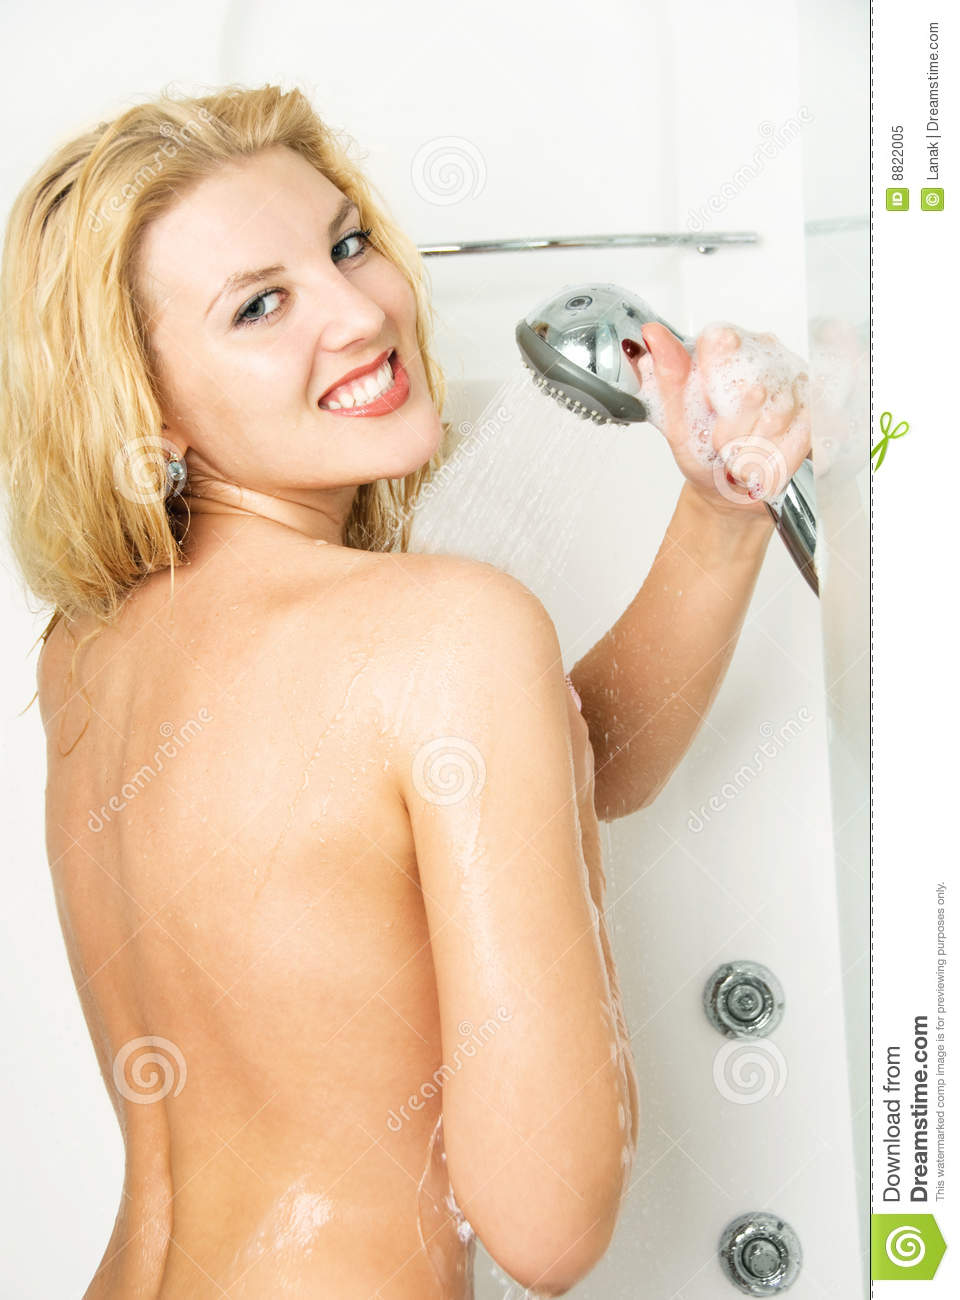 Nude women taking shower video